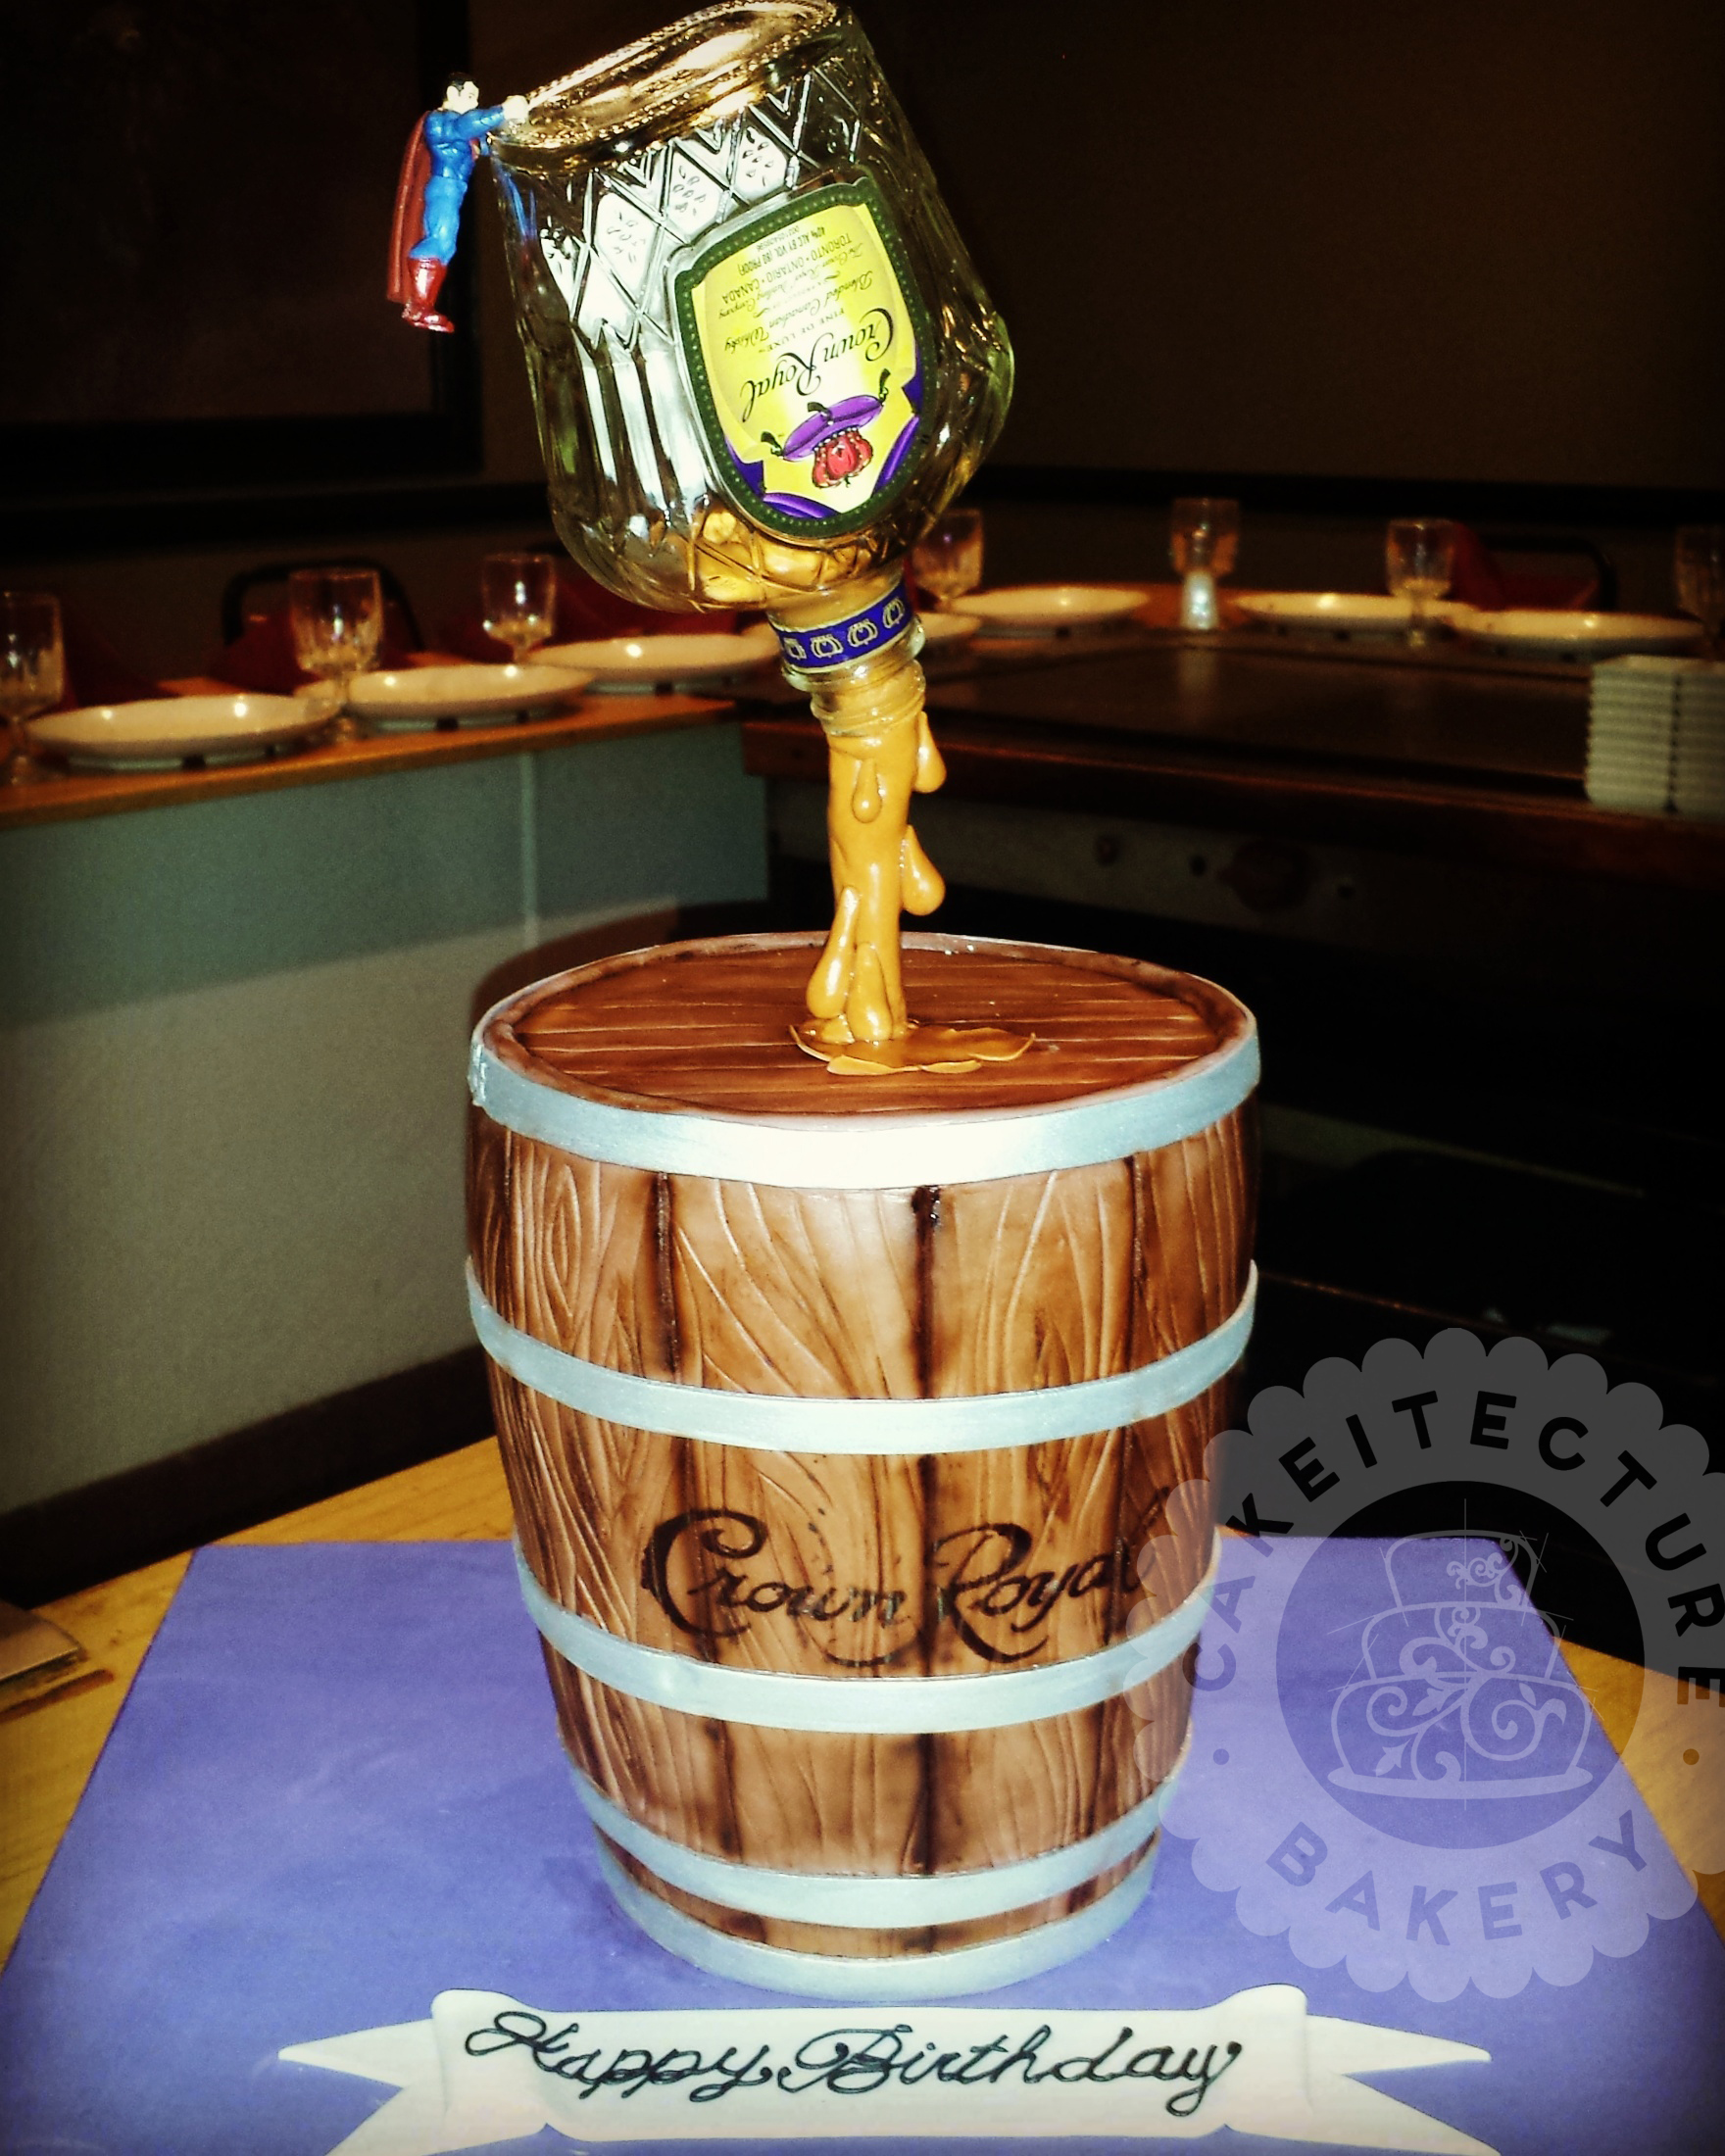 Cakeitecture Bakery crown royal copy.jpg